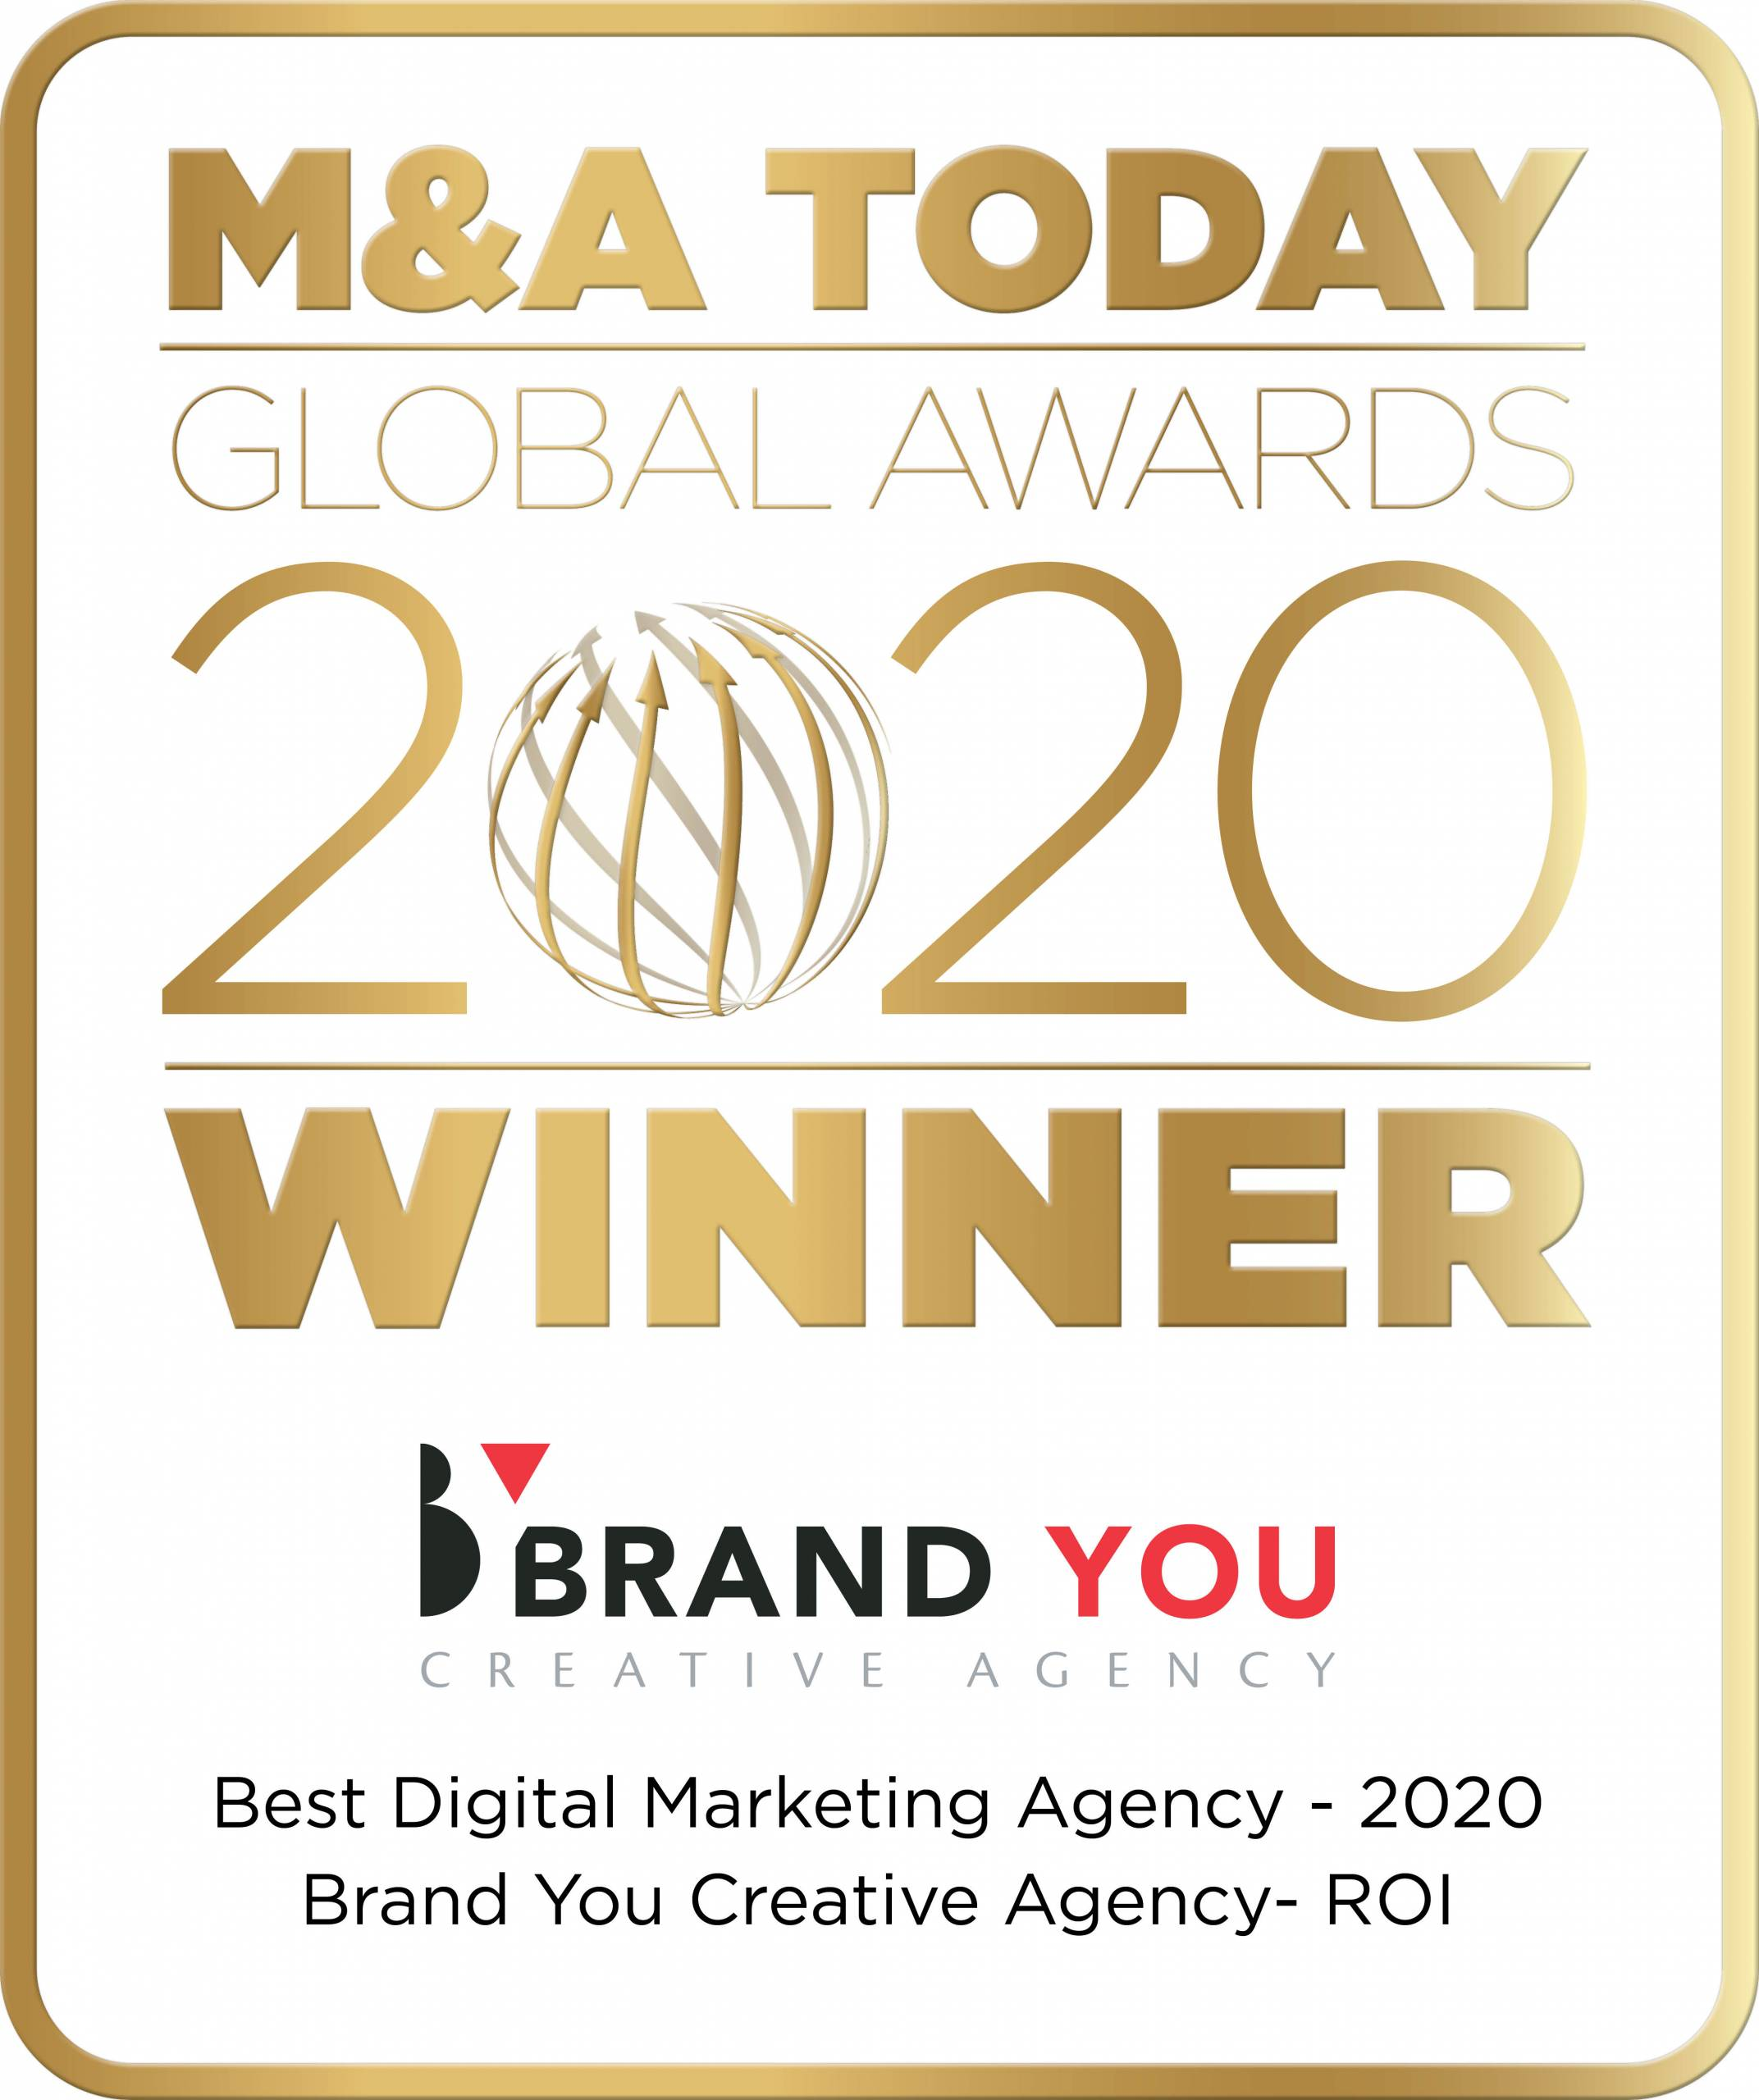 MA-Today-Global-Awards-logo-2020_Brand-You-Creative-Agency